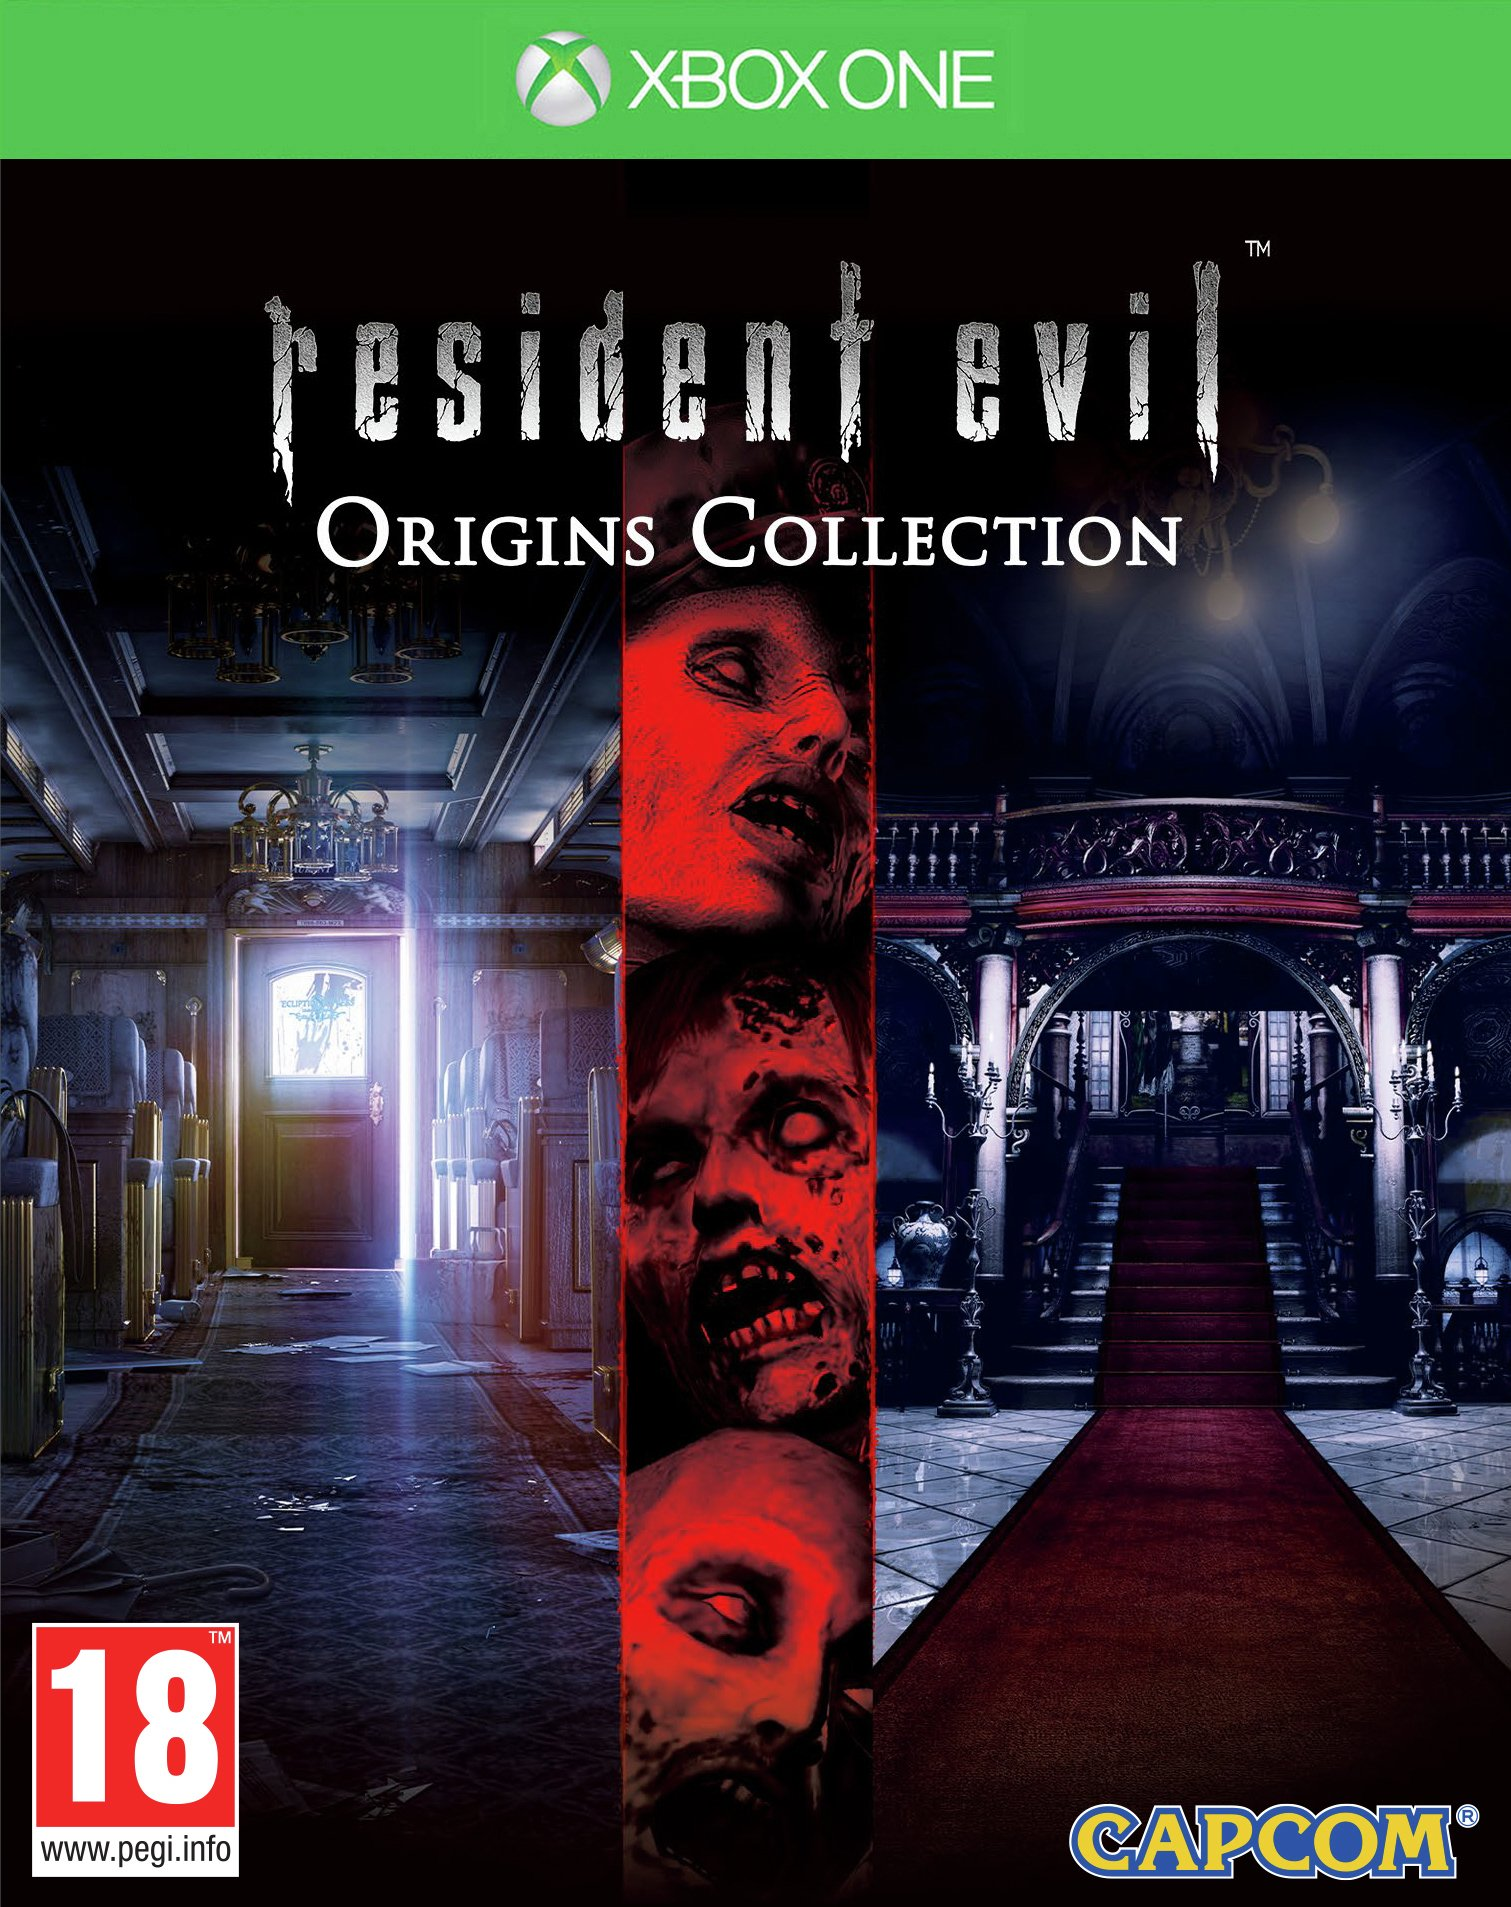 Image of Resident Evil Origins Collection Xbox One Game.